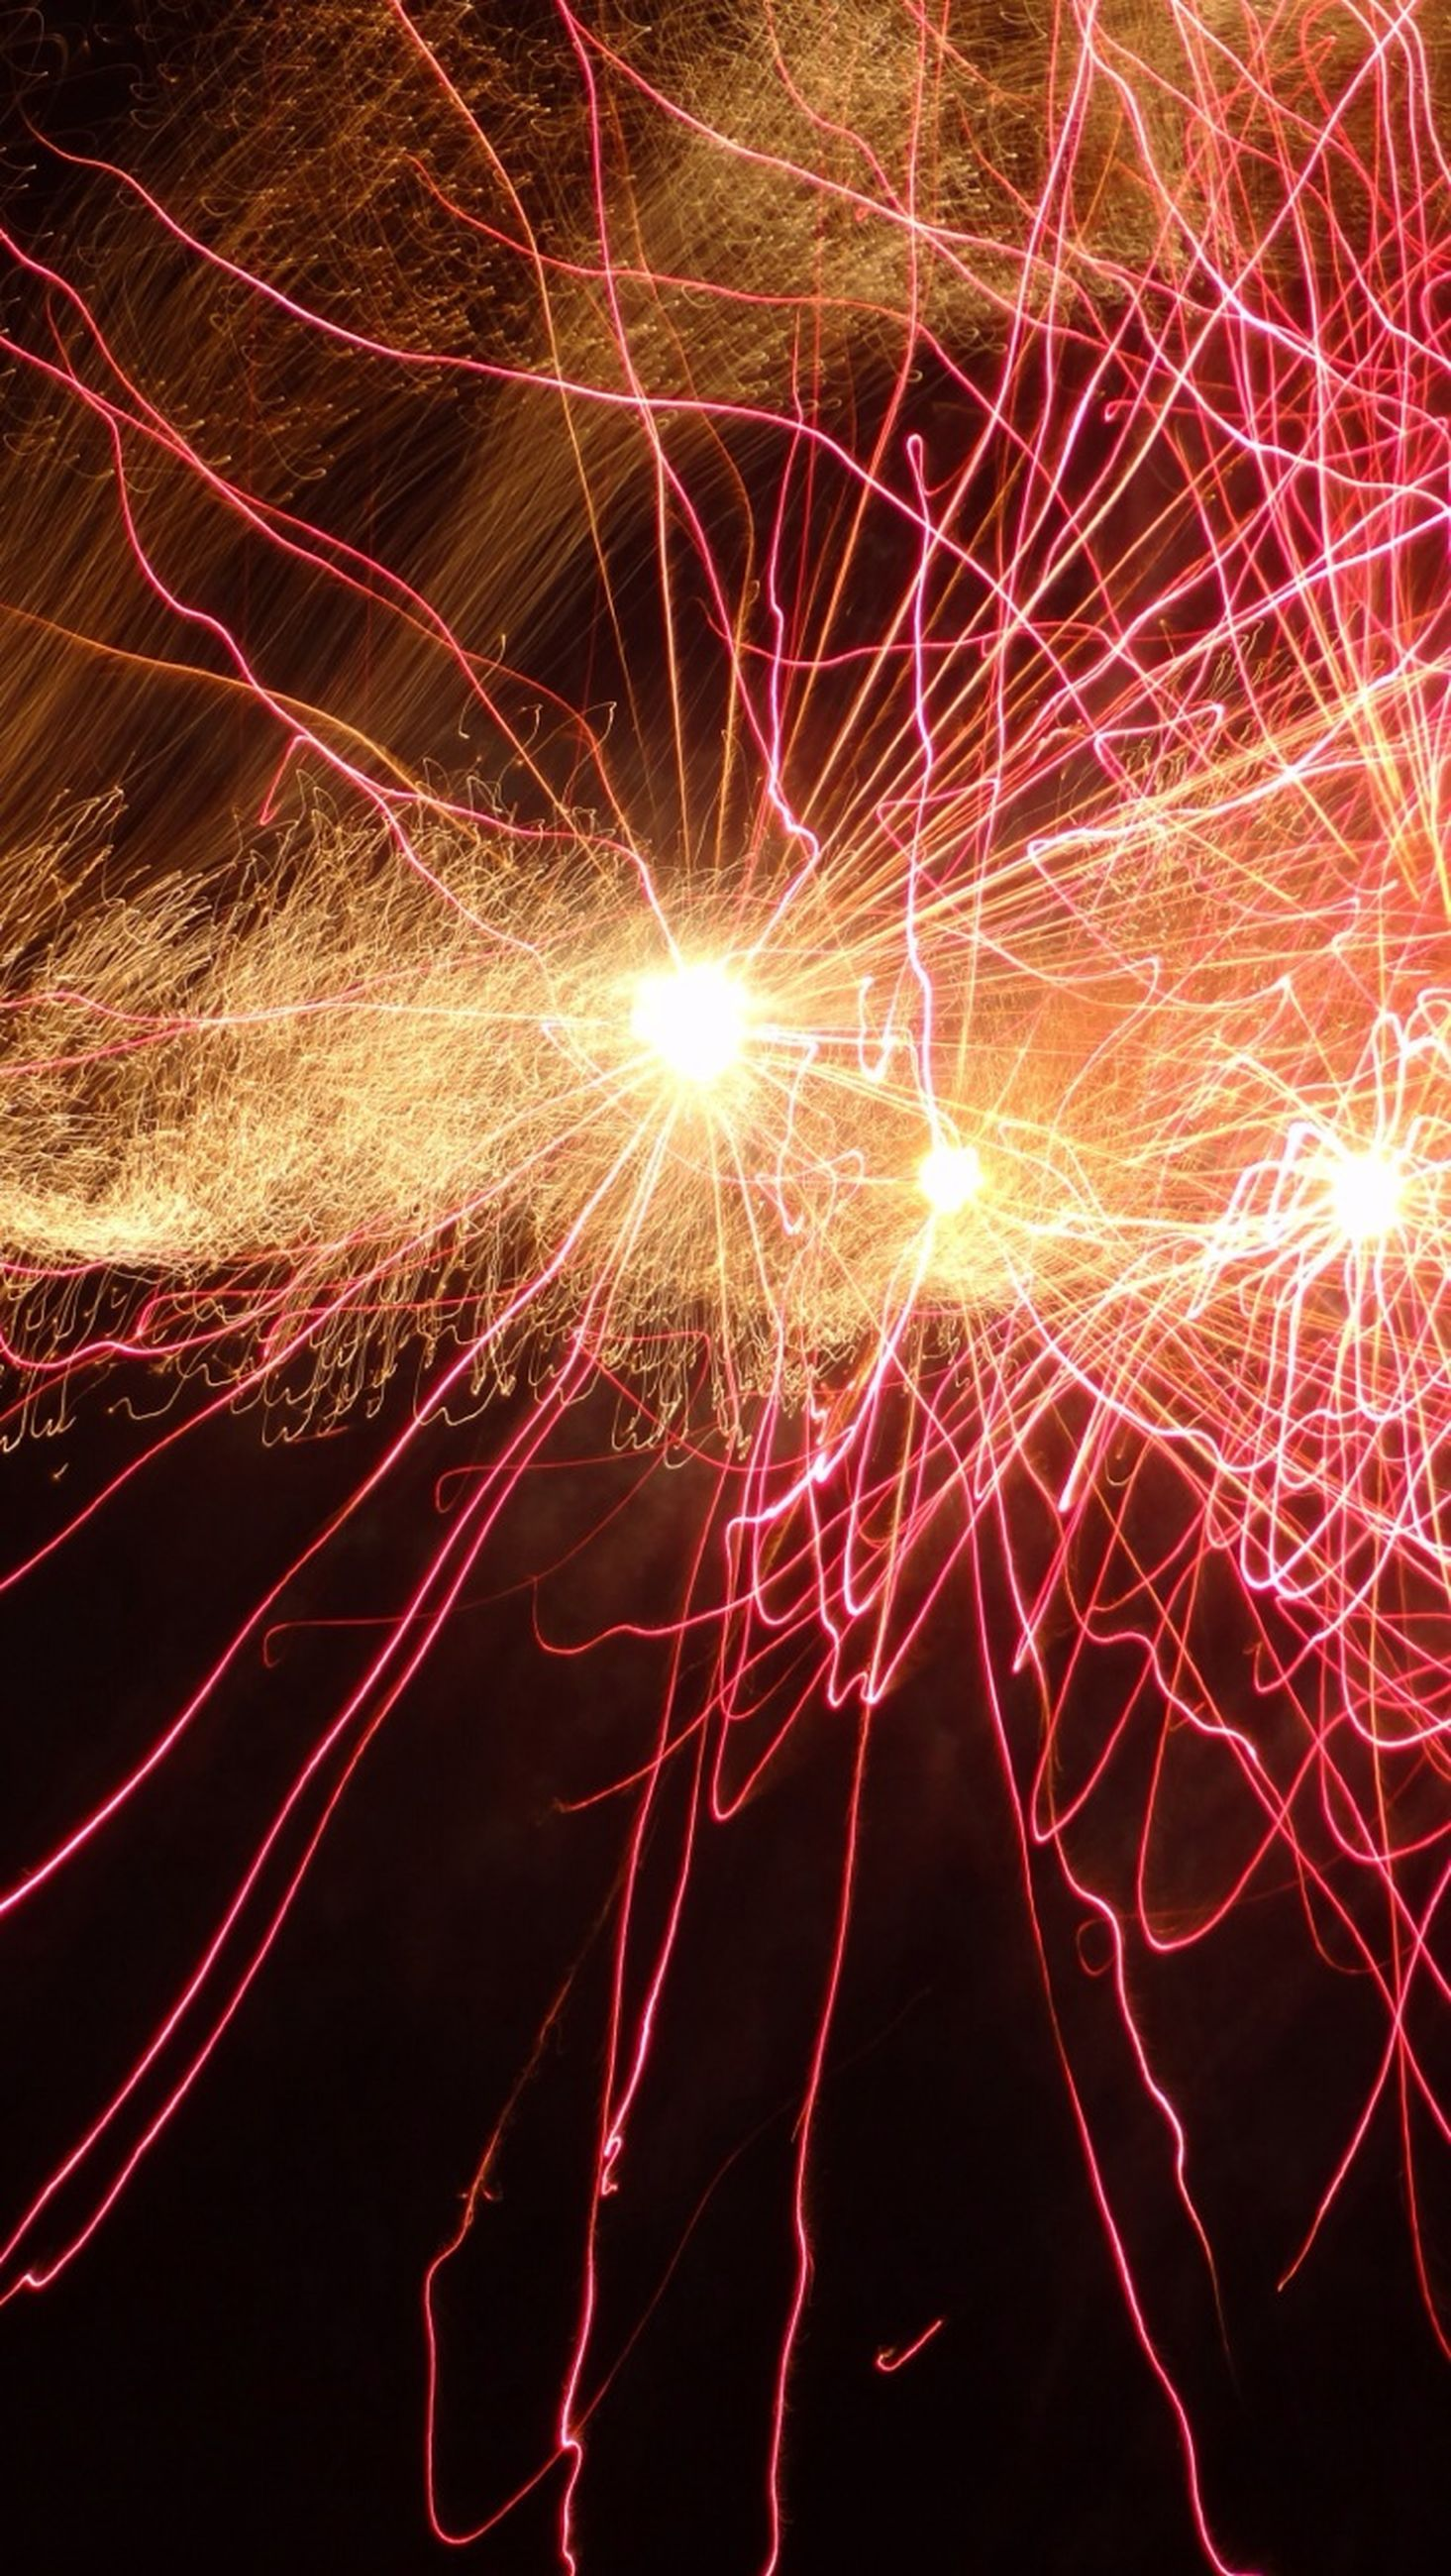 night, illuminated, glowing, long exposure, celebration, firework display, light, low angle view, exploding, red, abstract, dark, backgrounds, full frame, firework - man made object, motion, firework, arts culture and entertainment, lighting equipment, pattern